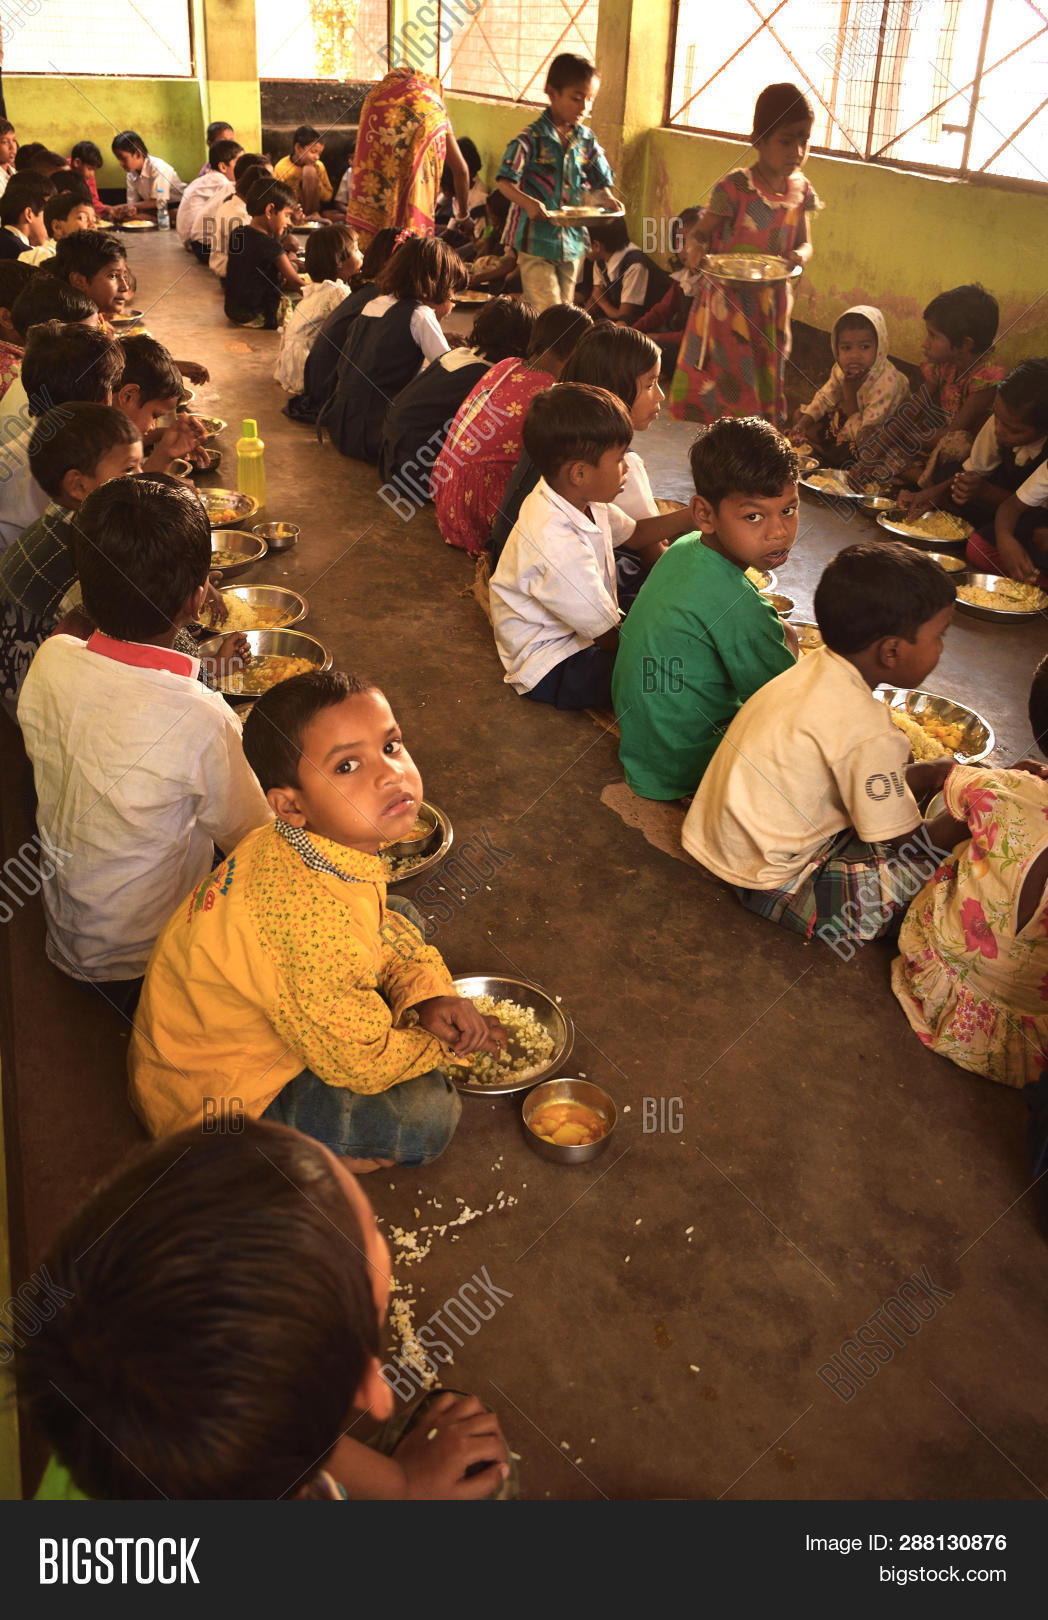 Mid Day Meal Program, Image & Photo (Free Trial) | Bigstock